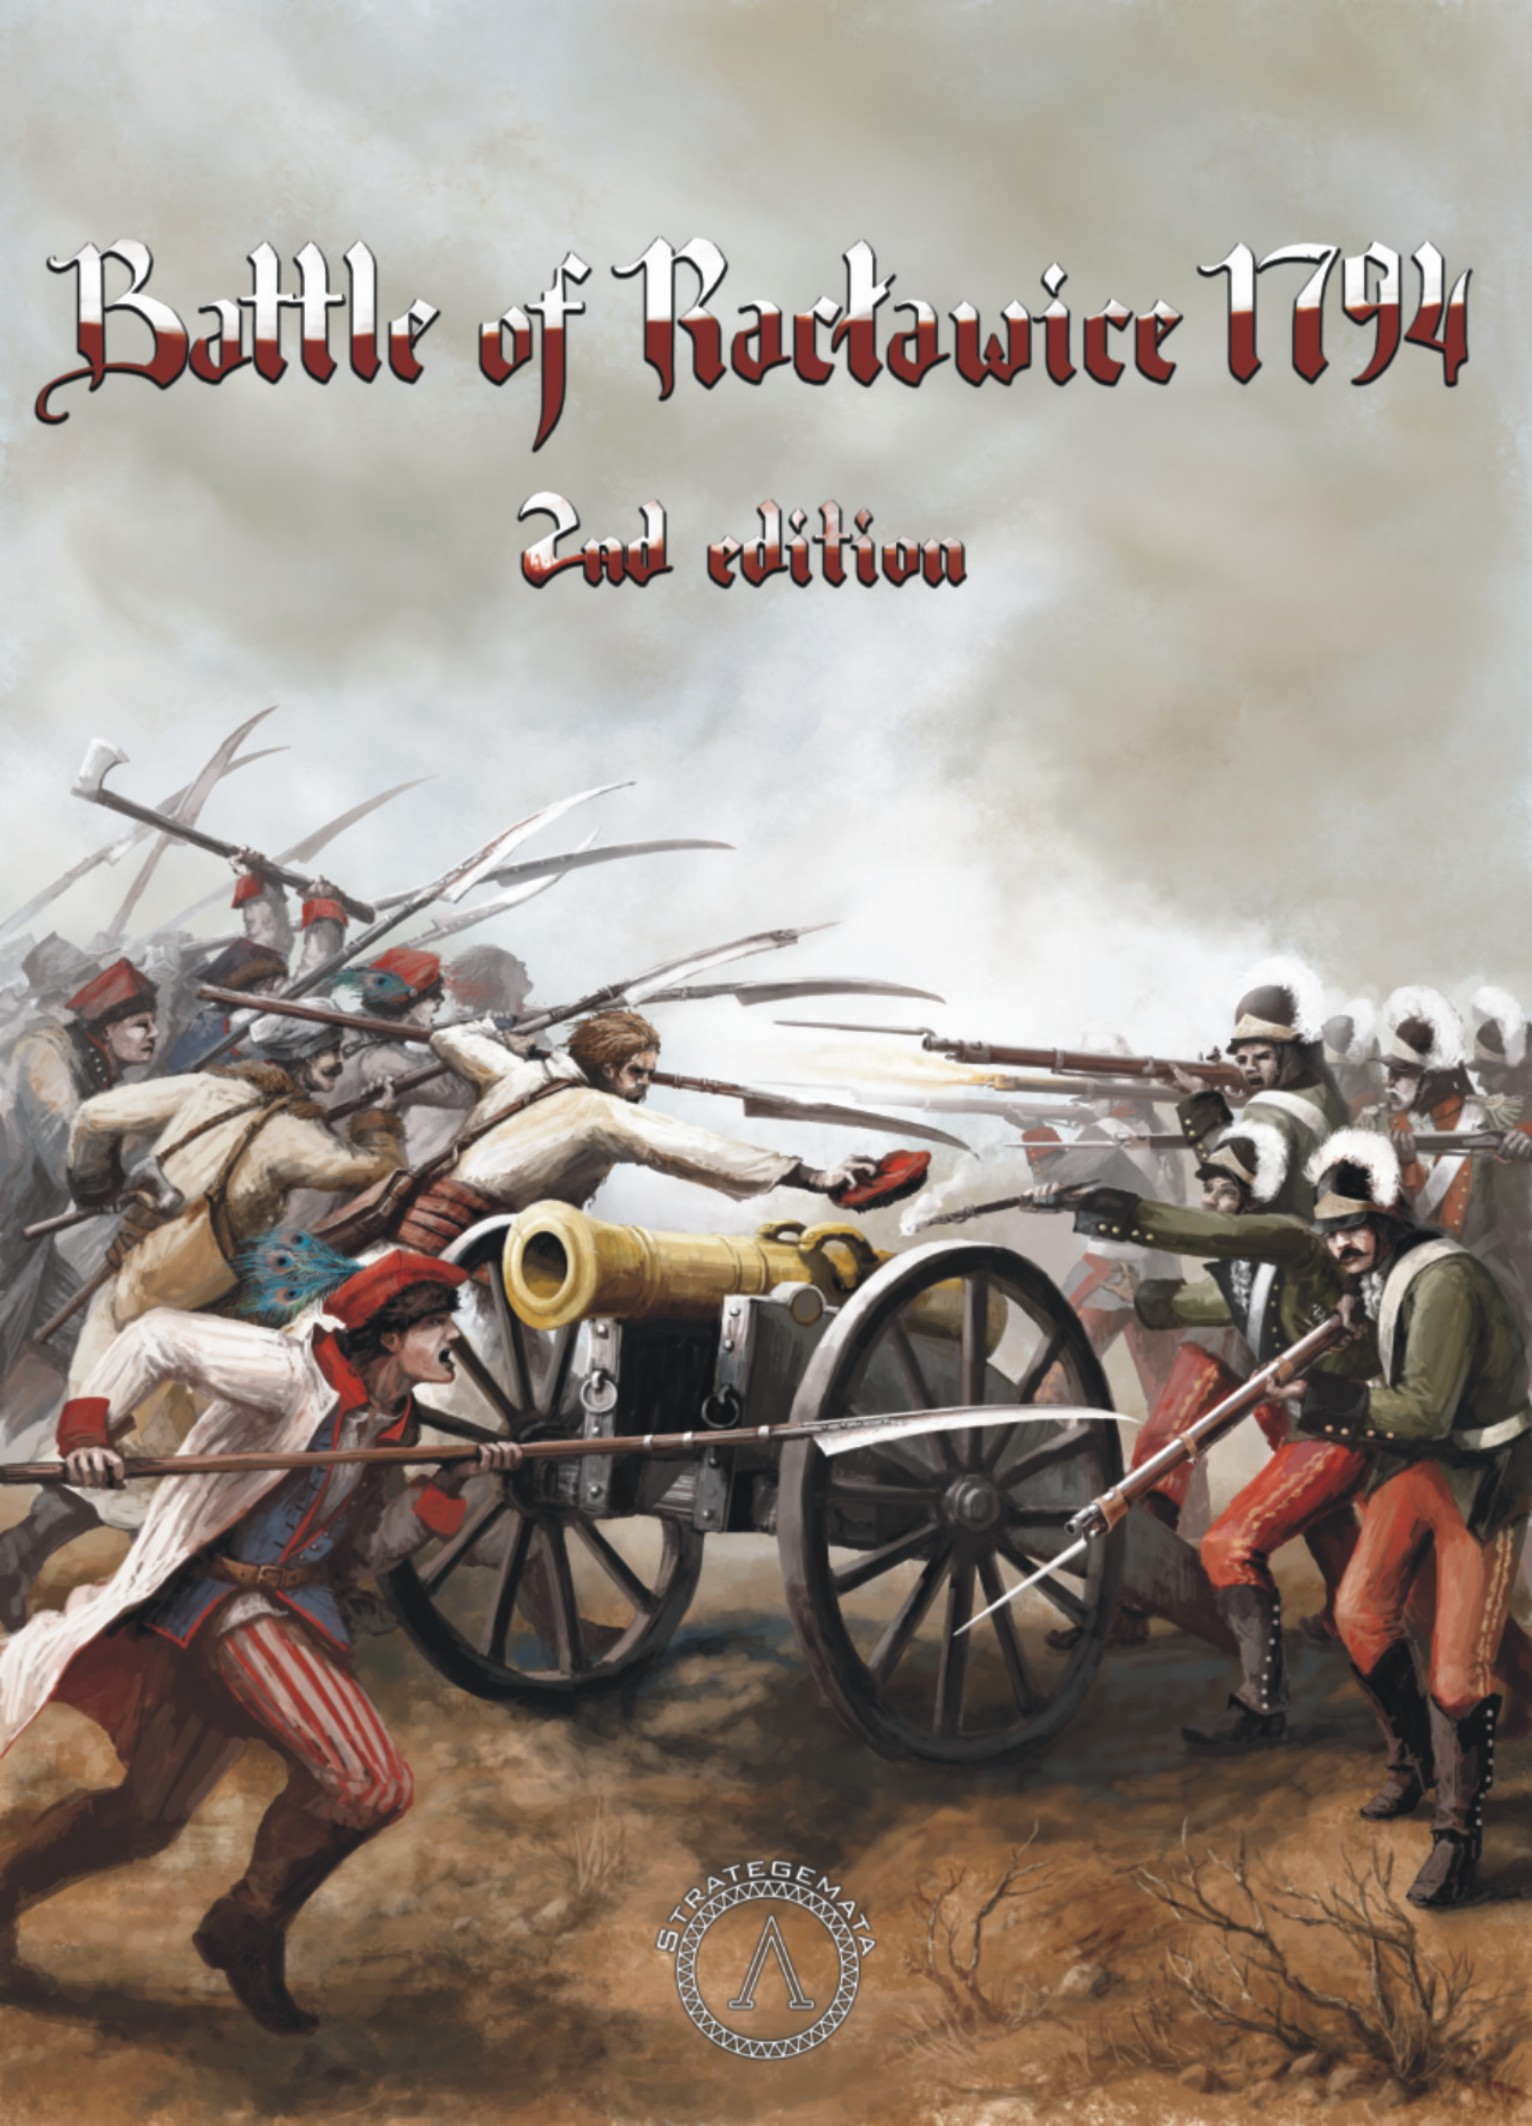 Battle of Raclawice 1794